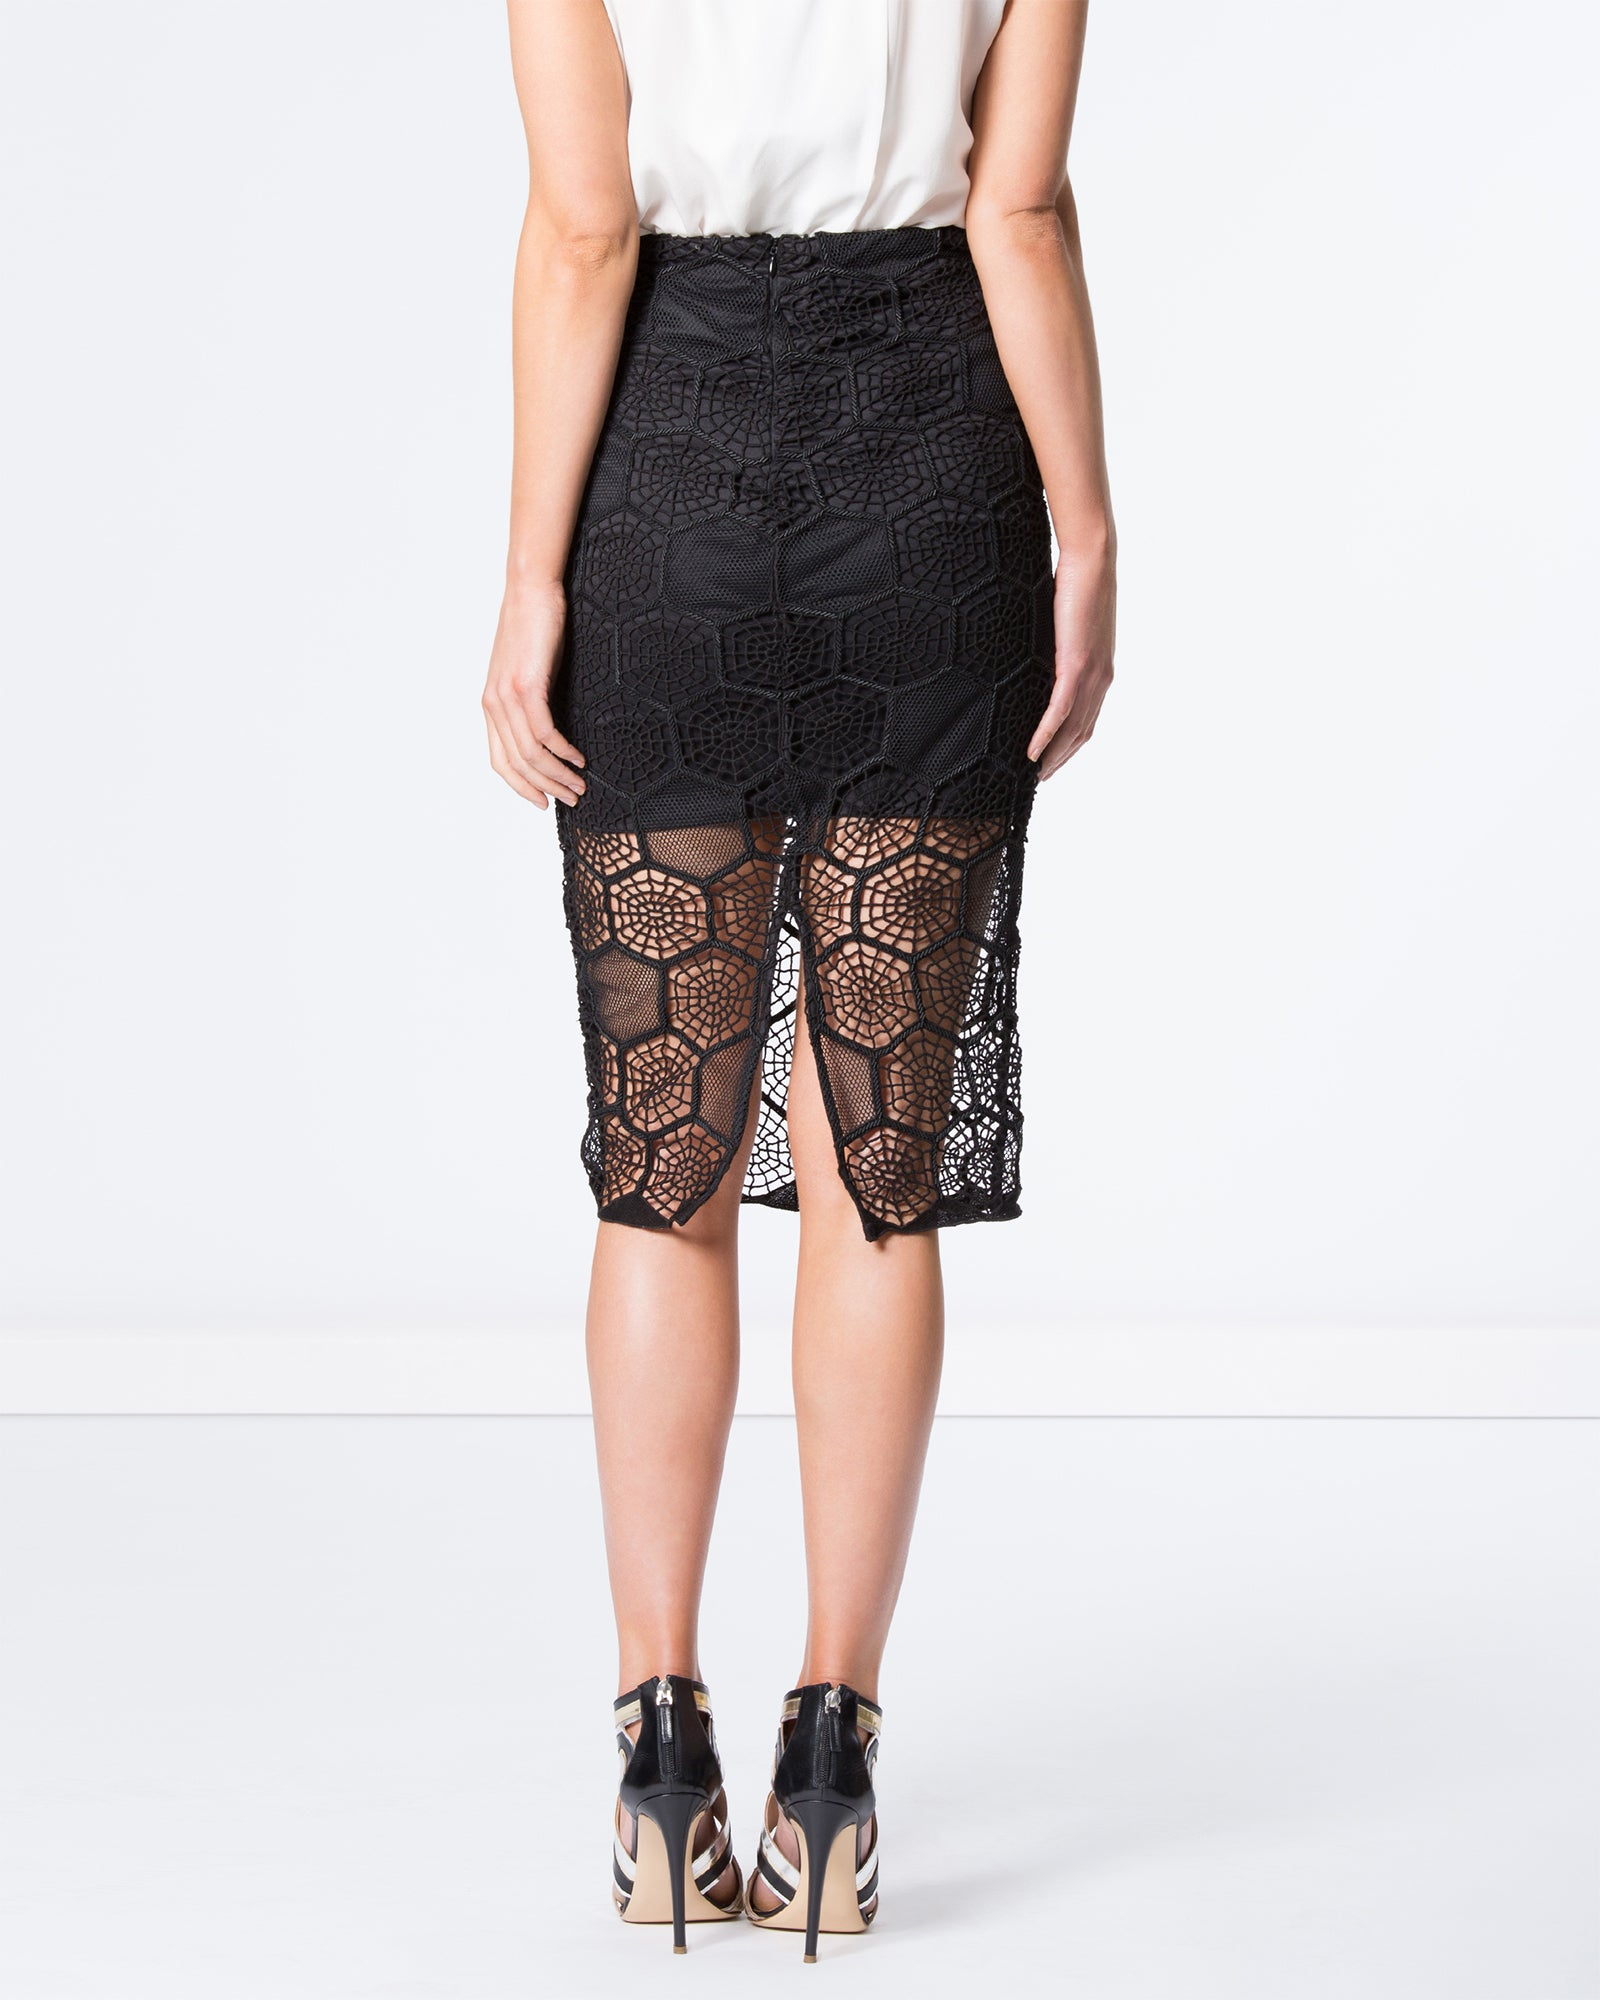 HONEYCOMB MESH SKIRT